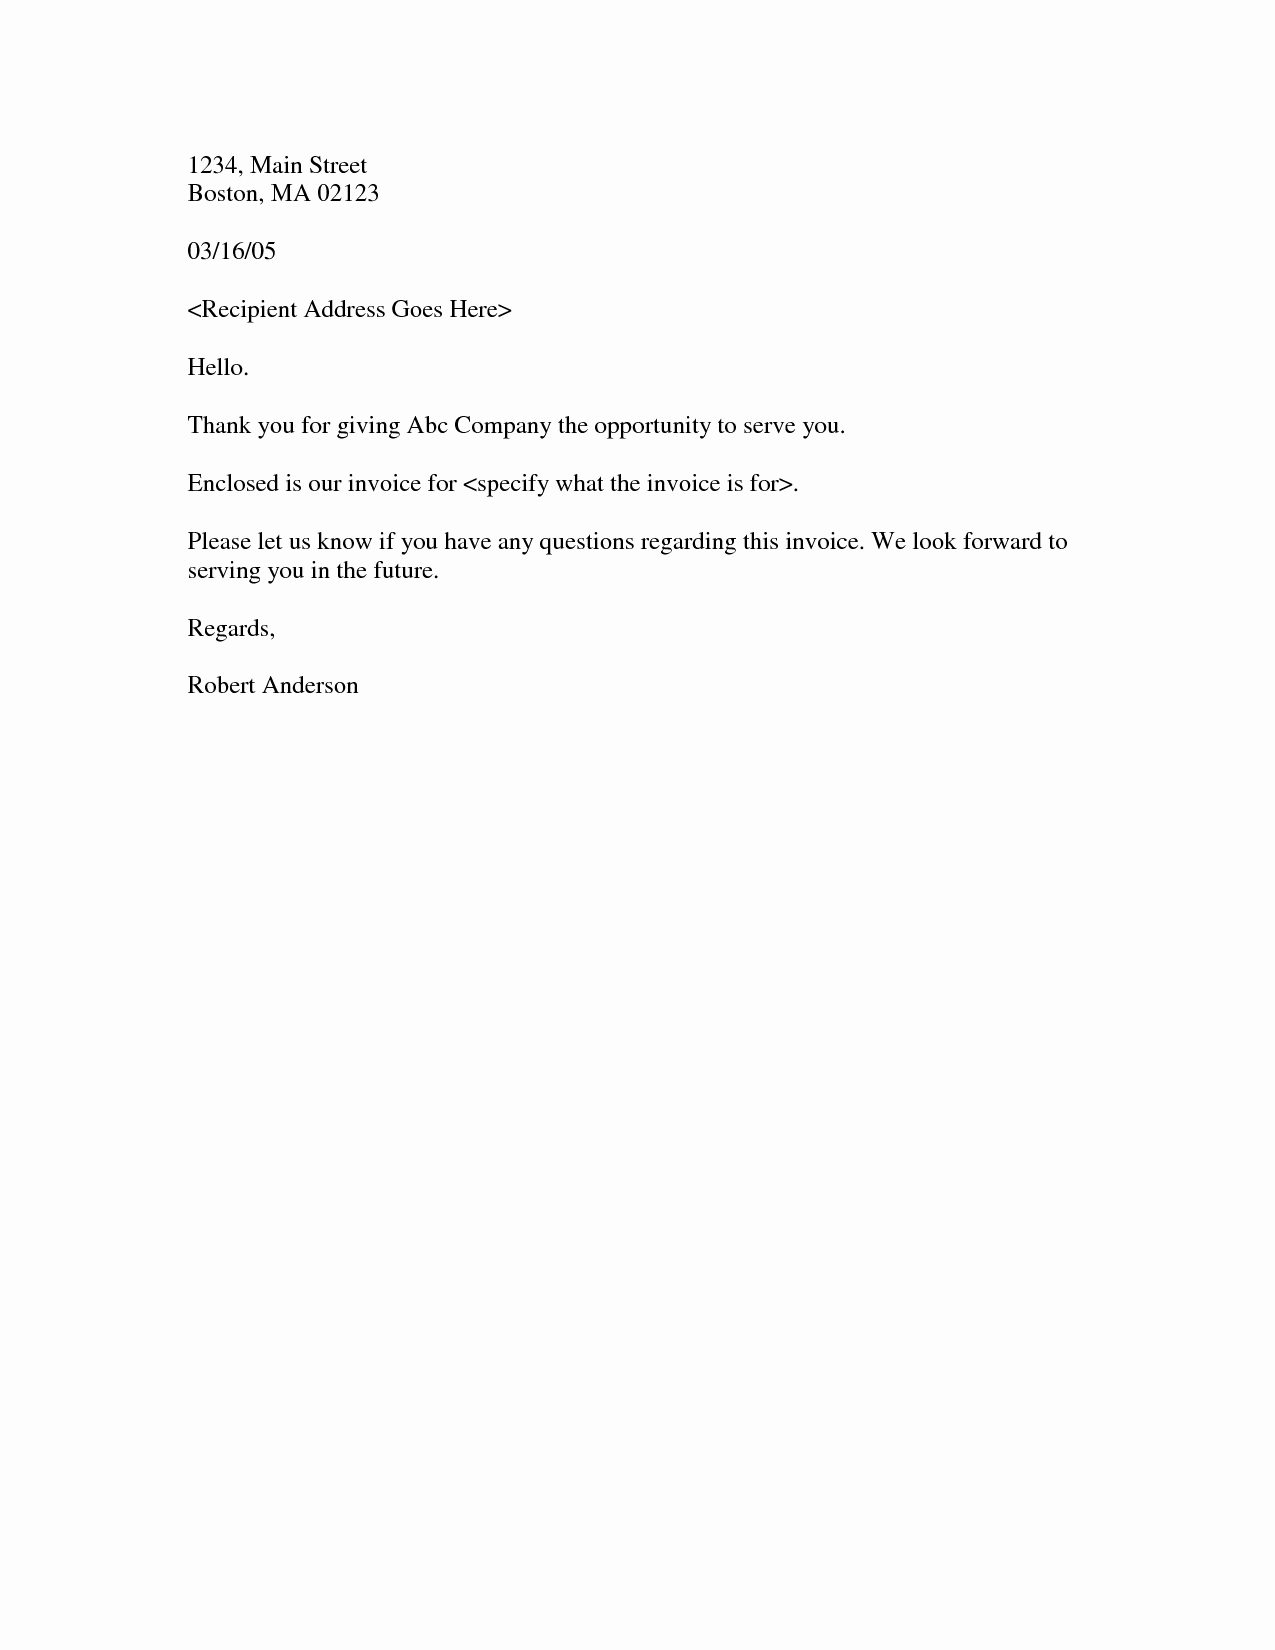 sample invoice cover letter wpawpartco invoice cover letter example